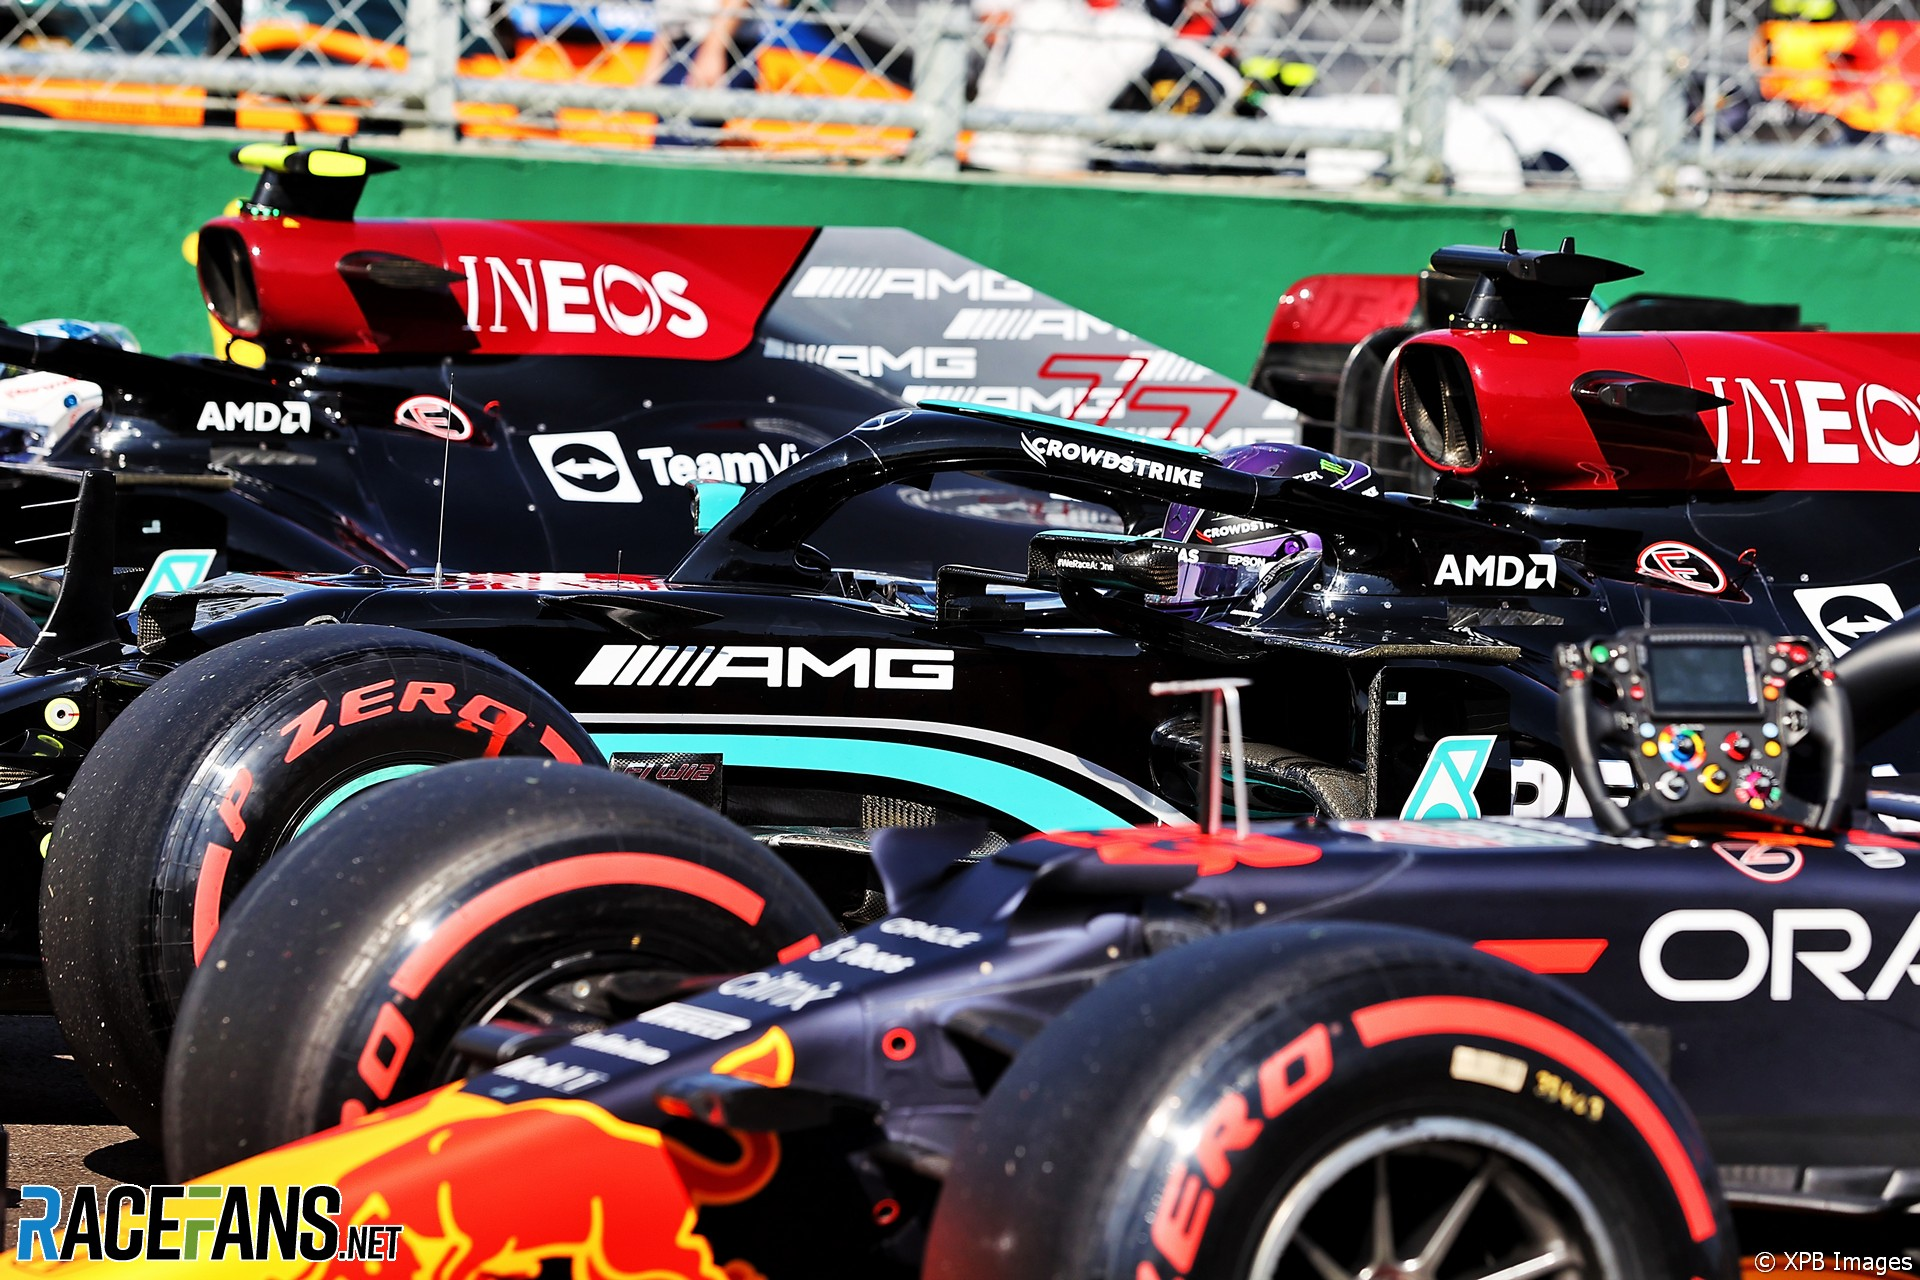 The Top Three Qualifiers : Third Place Max Verstappen (Red Bull Racing, RB16B), Pole Position Lewis Hamilton (Mercedes AMG F1 Team, F1 W12) and Second Place Valtteri Bottas (Mercedes AMG F1 Team, F1 W12)